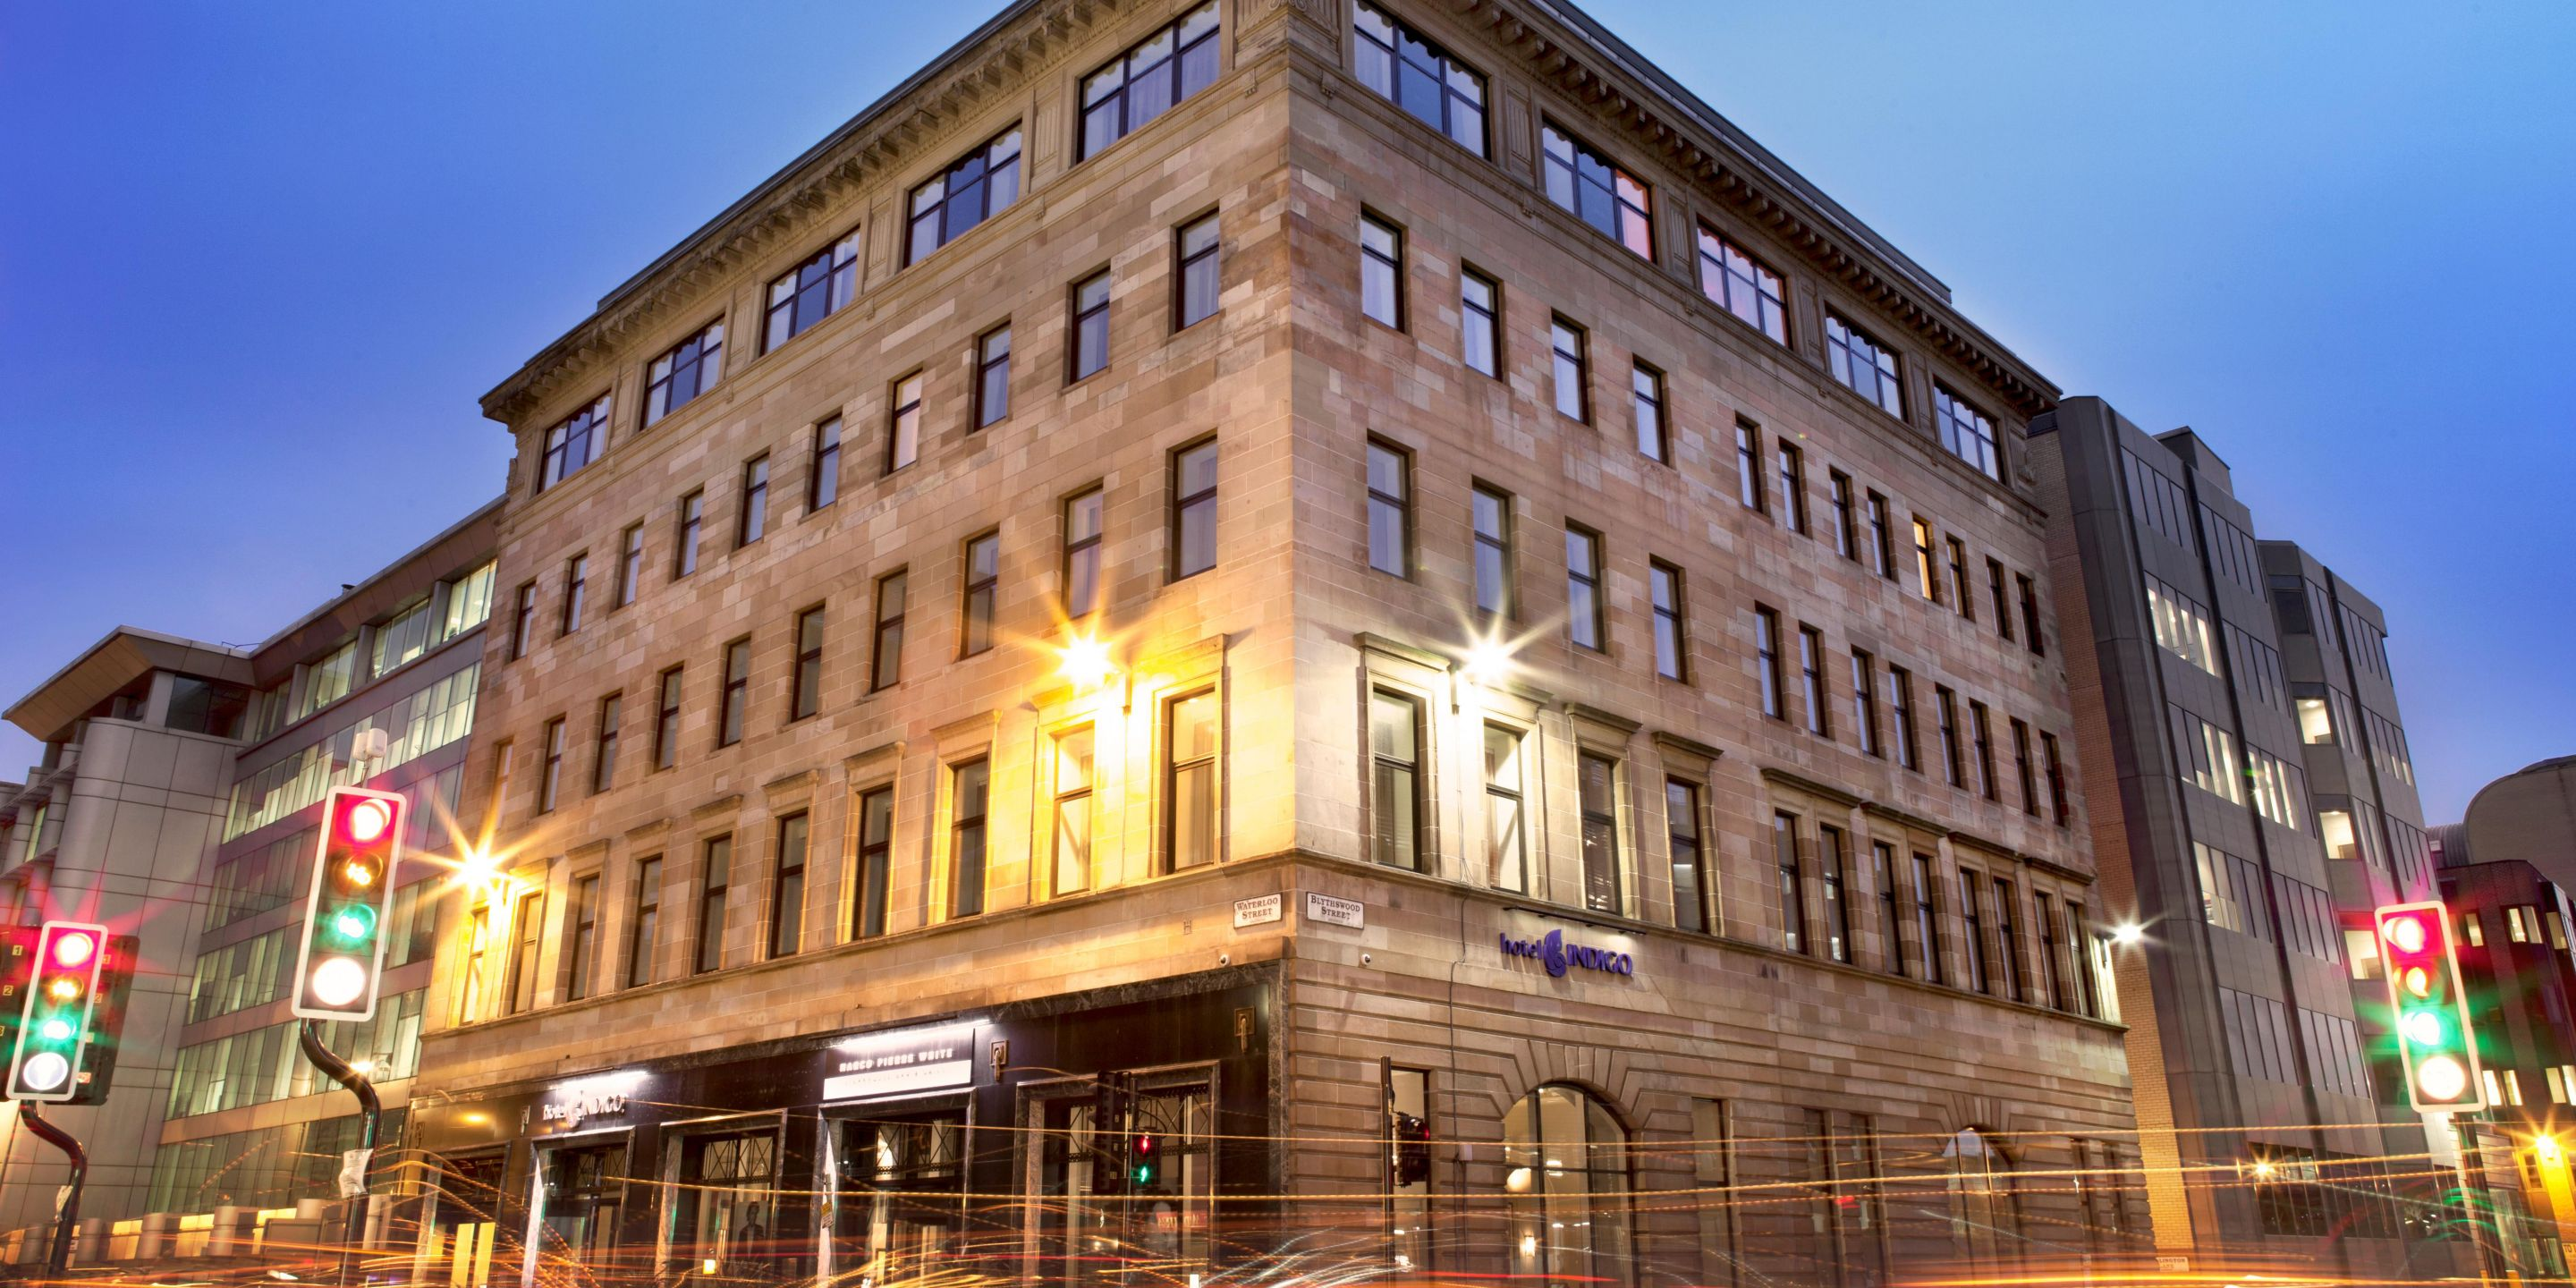 Hotel indigo glasgow is up for sale in ihg franchise deal for Design hotel glasgow